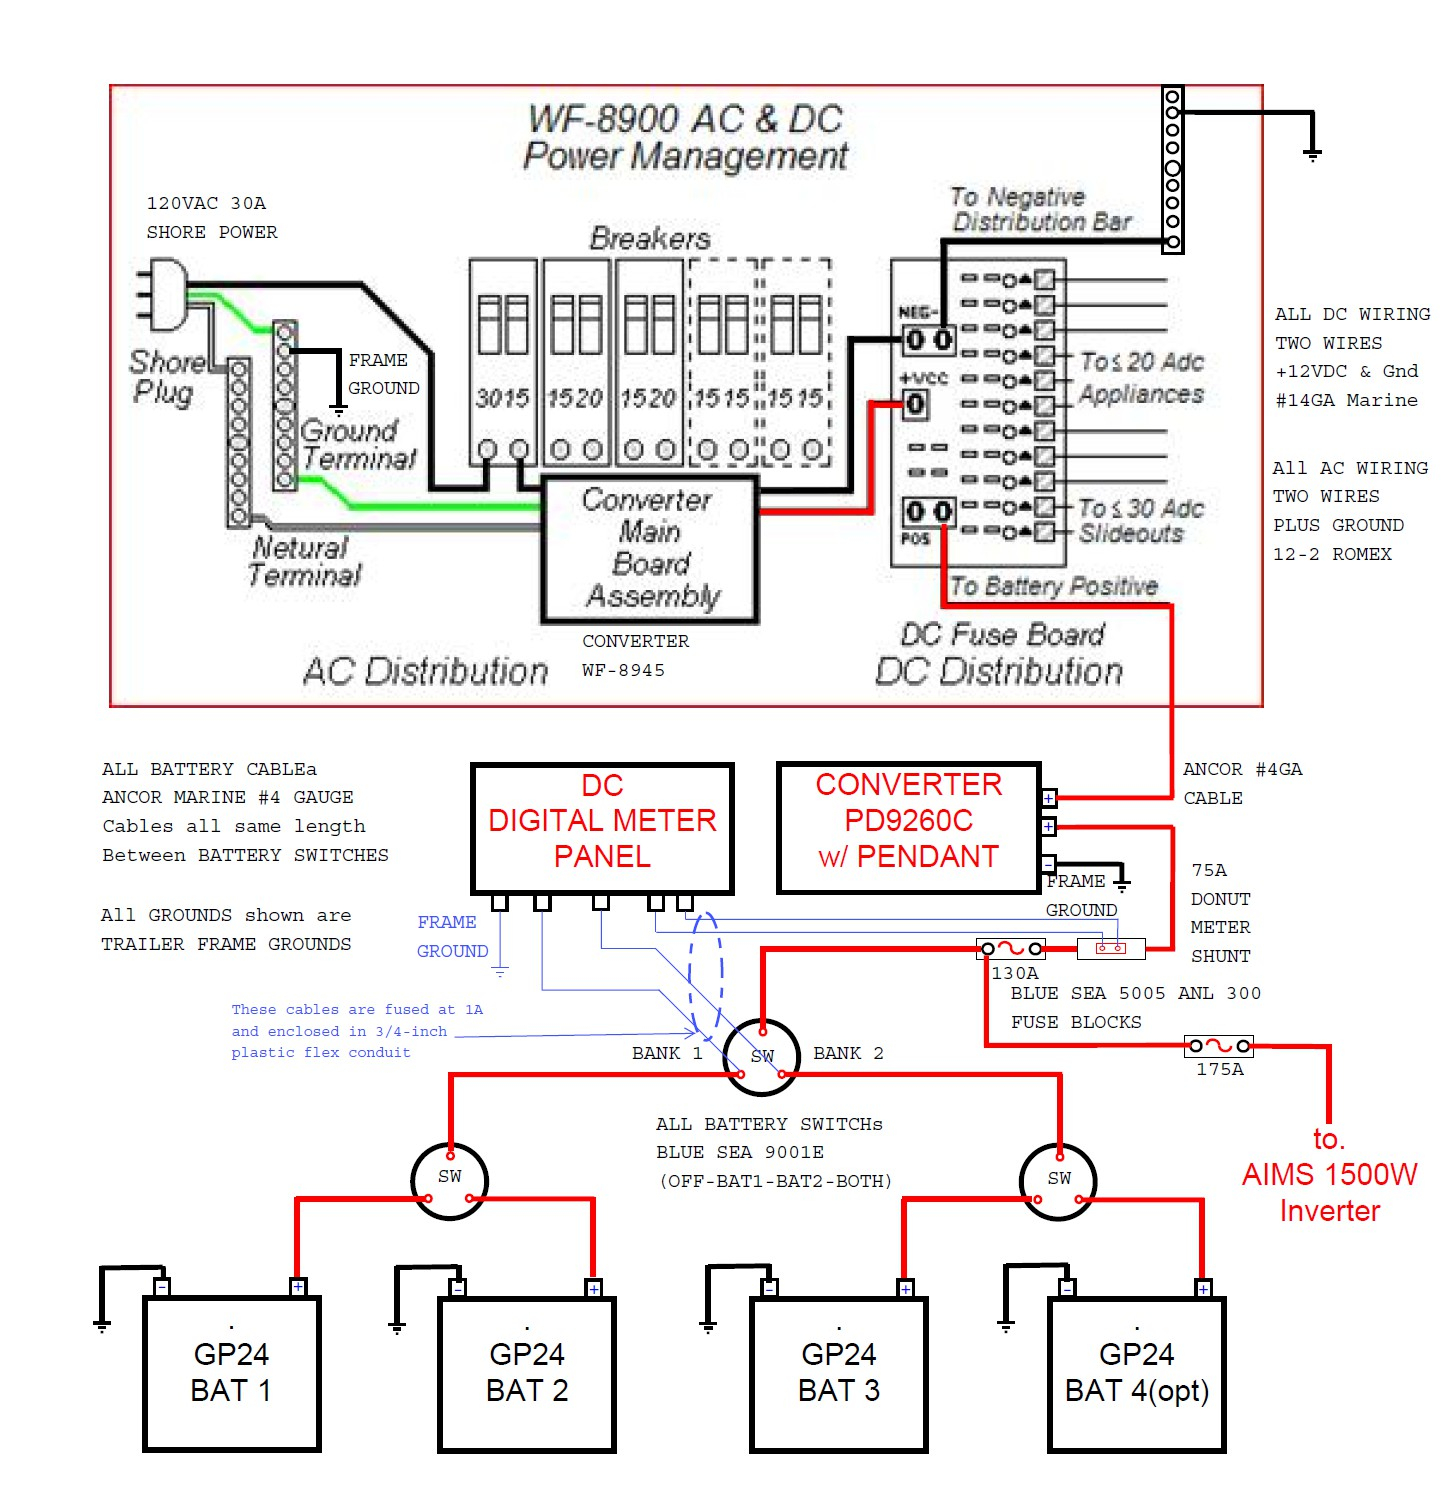 magnetek power converter 6345 wiring diagram Download-Luxury Progressive  Dynamics Power Converter Wiring Diagram Wiring